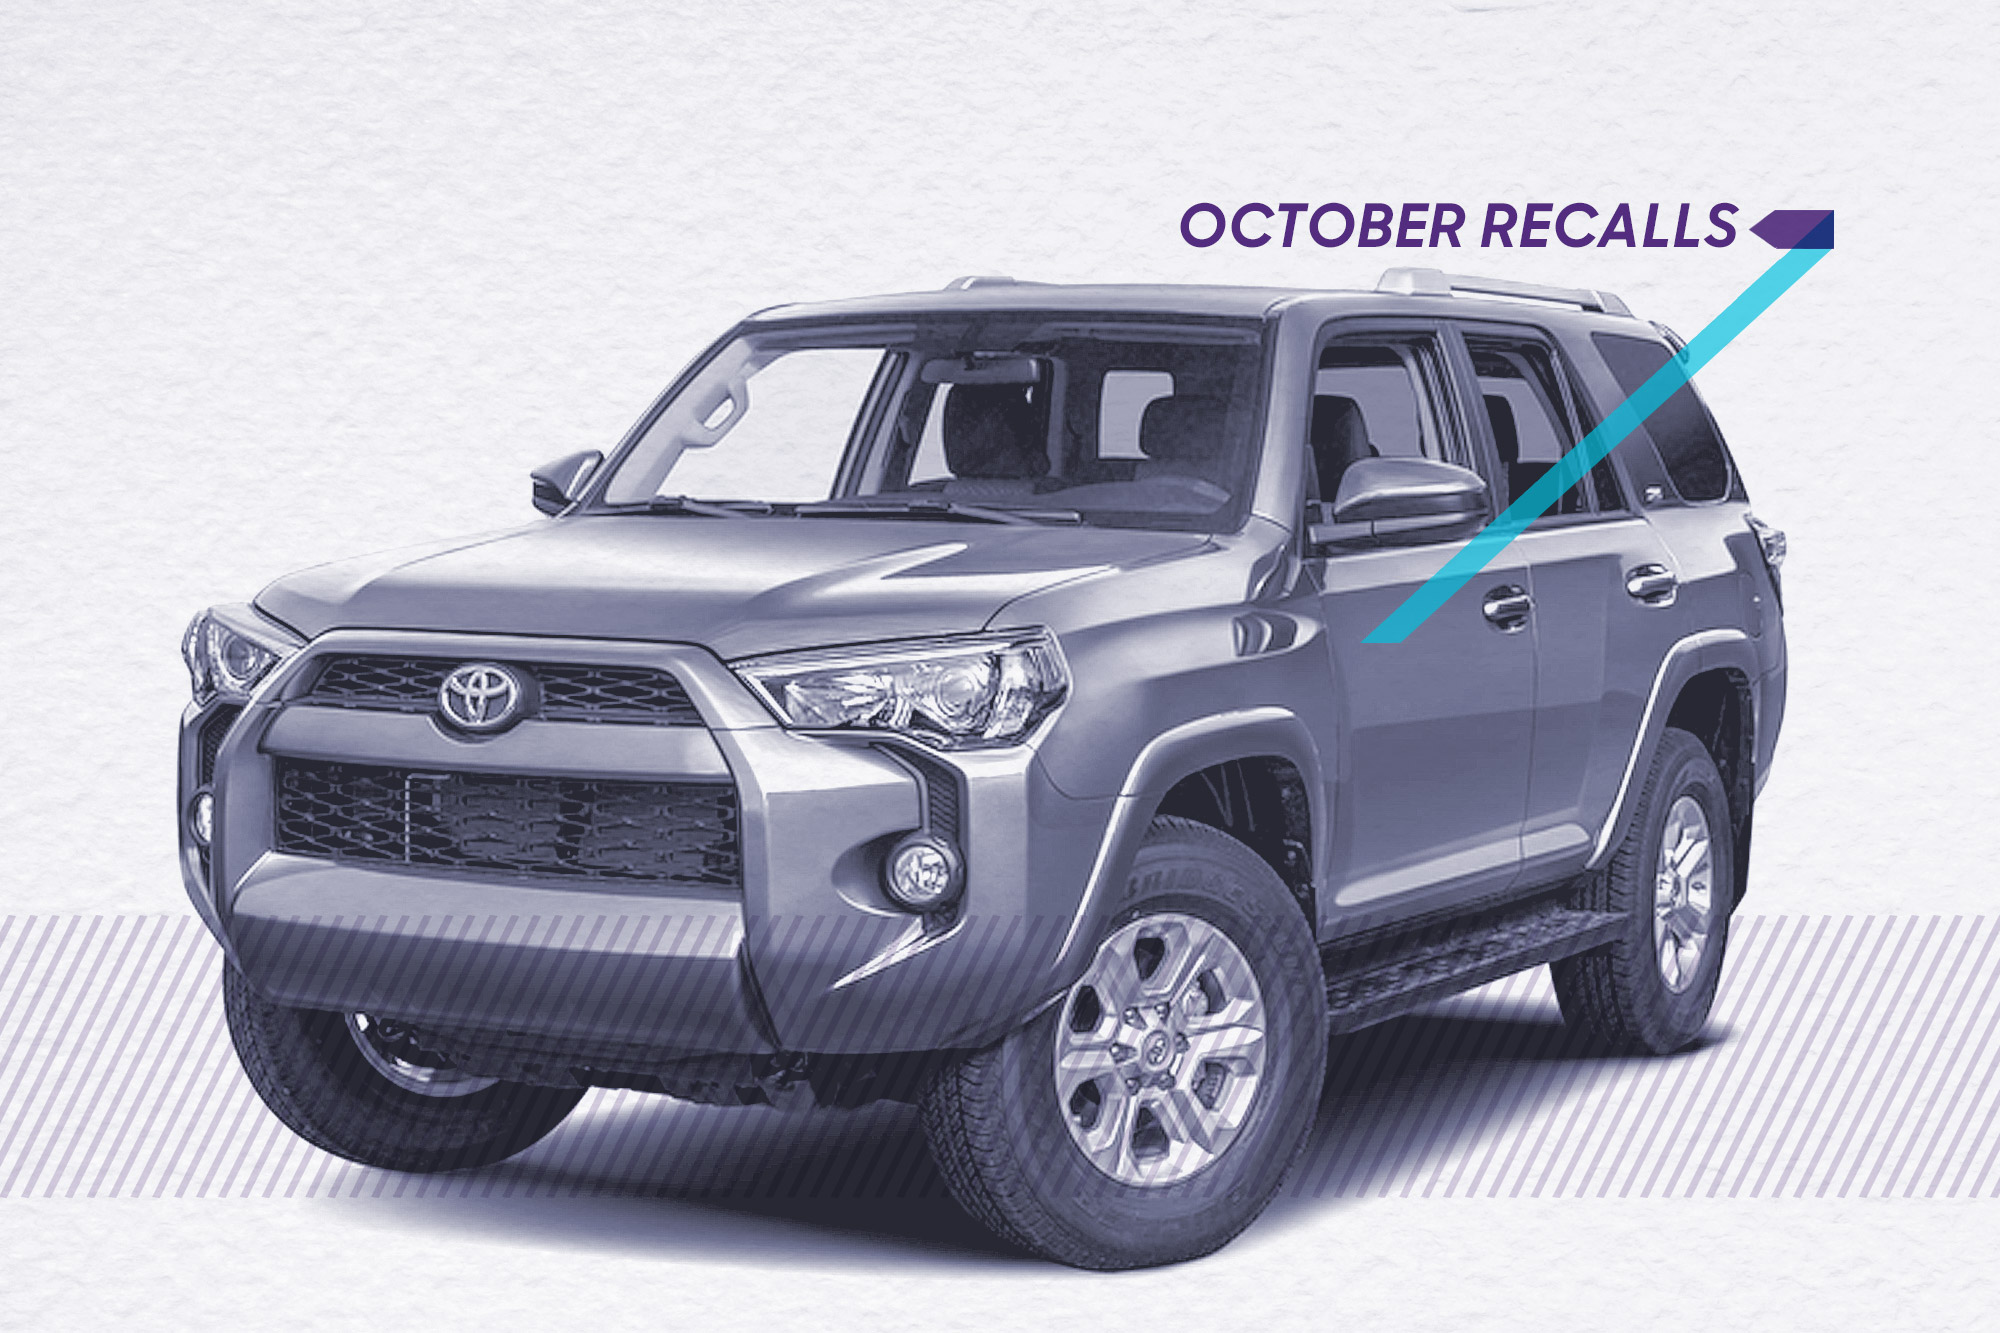 Recall Recap: The 5 Biggest Recalls in October 2019